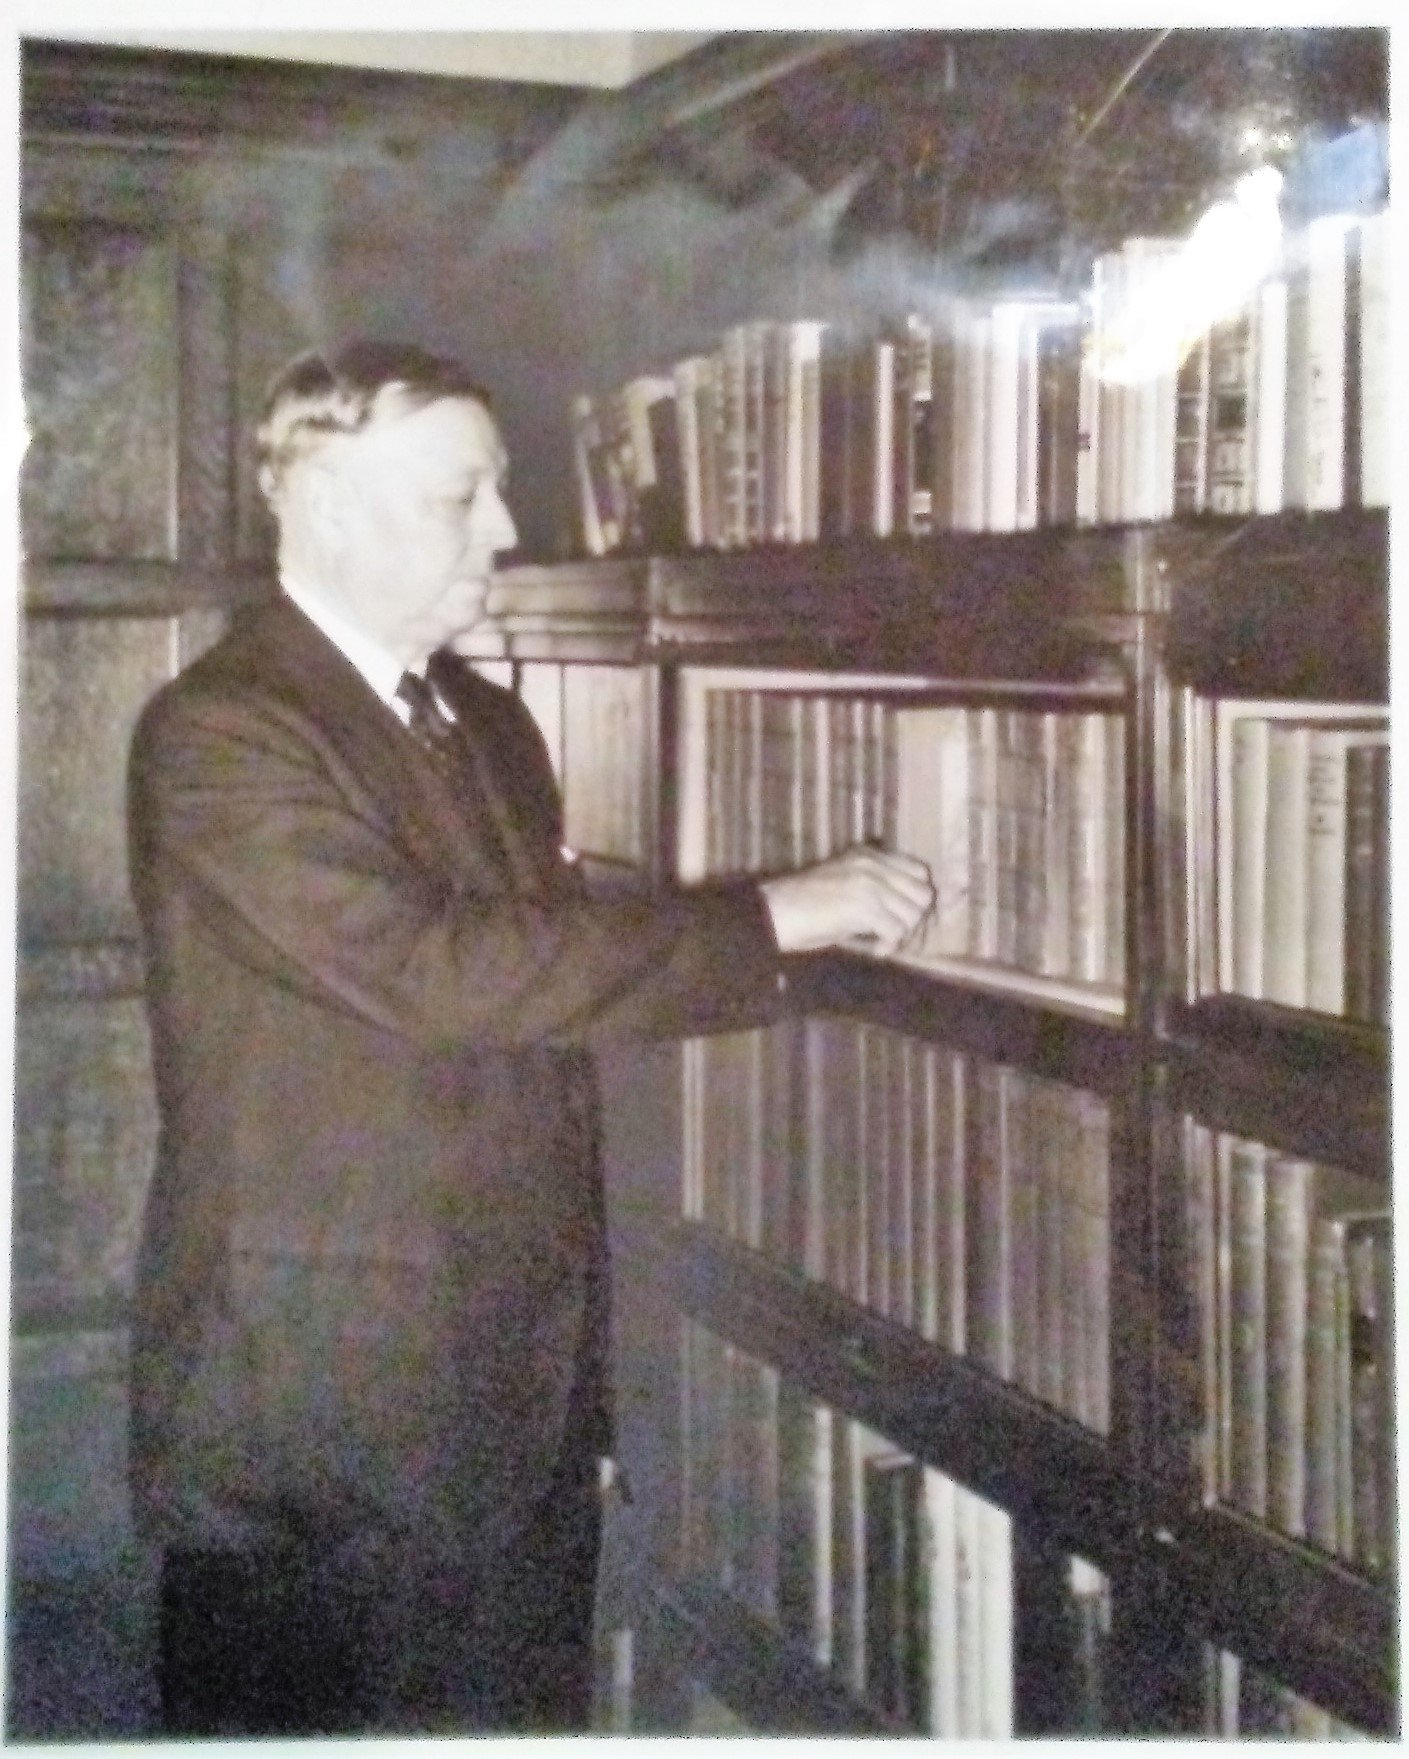 President Bizzell loved books. He worked during his tenure to increase academic publishing through the University Press and build a larger library on campus. He has a special collection of Bibles featured in Bizzell Memorial Library.